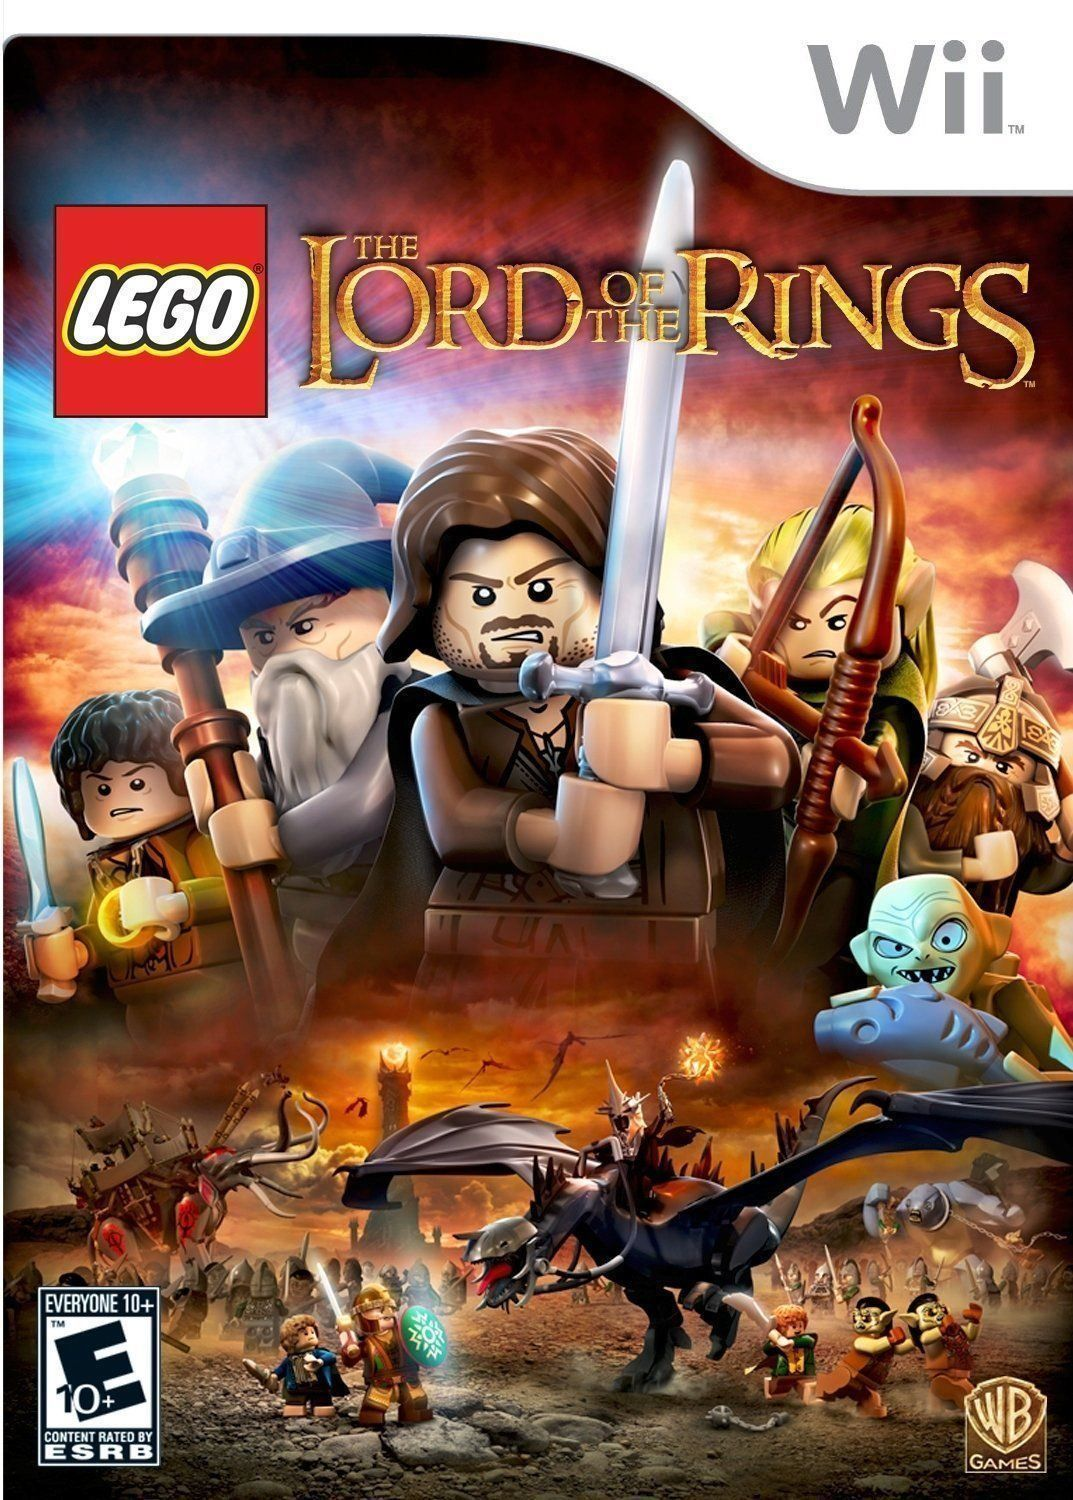 Wedding decorations rental october 2018 LEGO Lord of the Rings  Nintendo Wii LEGO Lord of the Rings